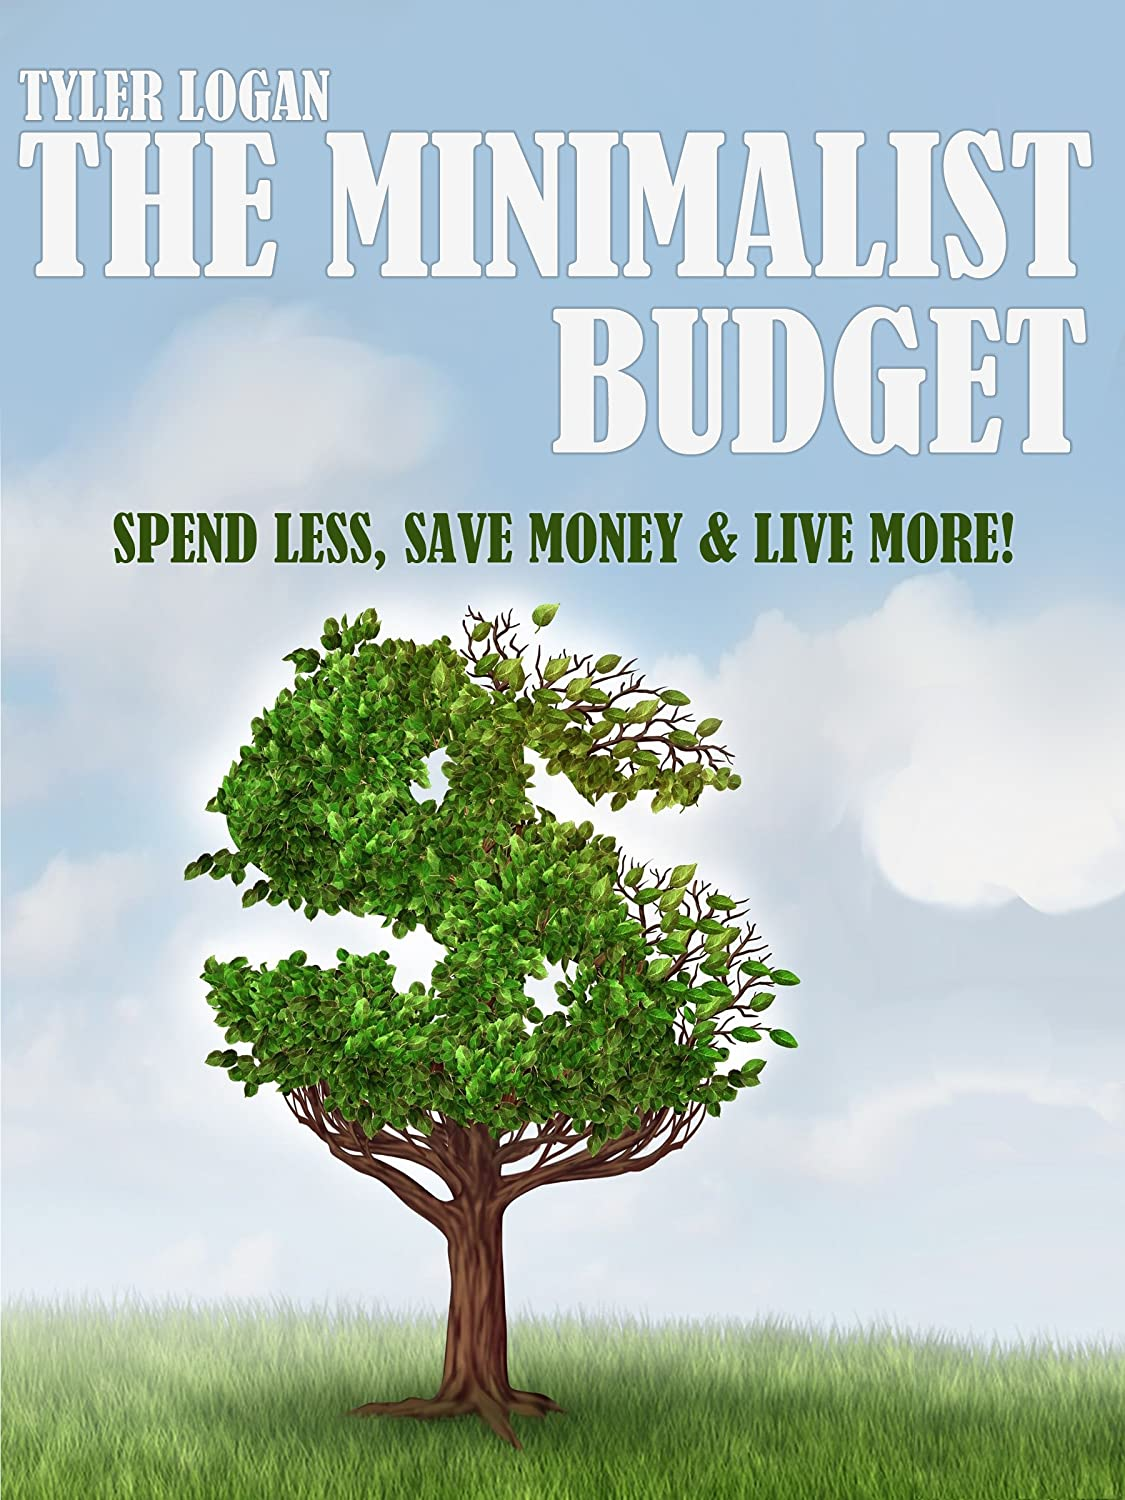 http://www.amazon.com/The-Minimalist-Budget-Minimalism-Simple-ebook/dp/B00HYFHISQ/ref=as_sl_pc_ss_til?tag=lettfromahome-20&linkCode=w01&linkId=KEPJI4CKQODEAWO6&creativeASIN=B00HYFHISQ